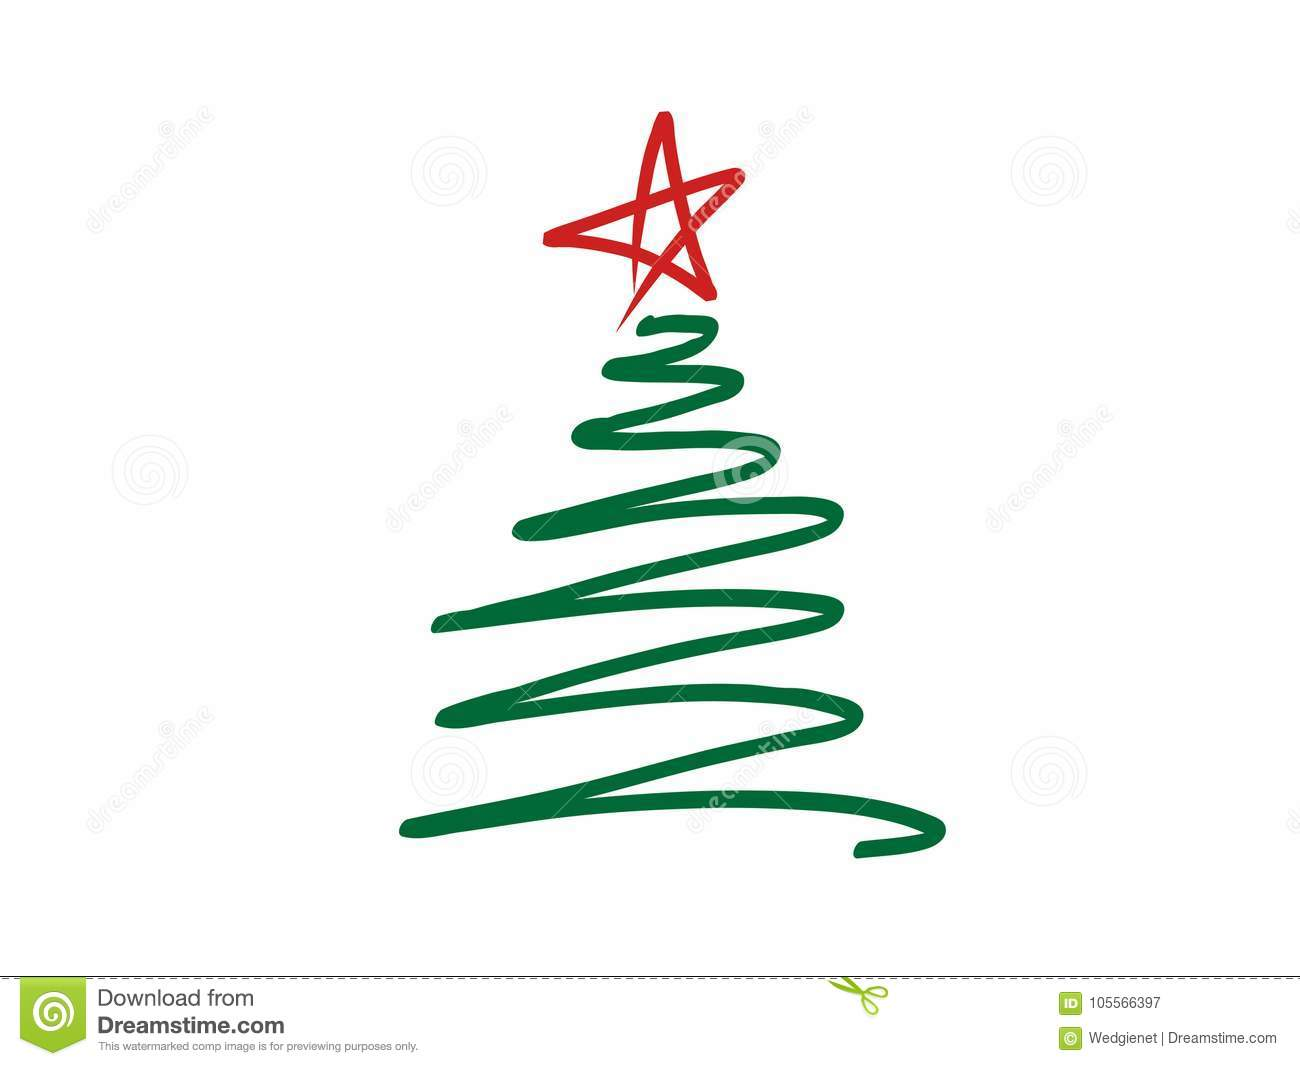 Vector illustration of doodle-style stylized Christmas tree scribble with red star on top